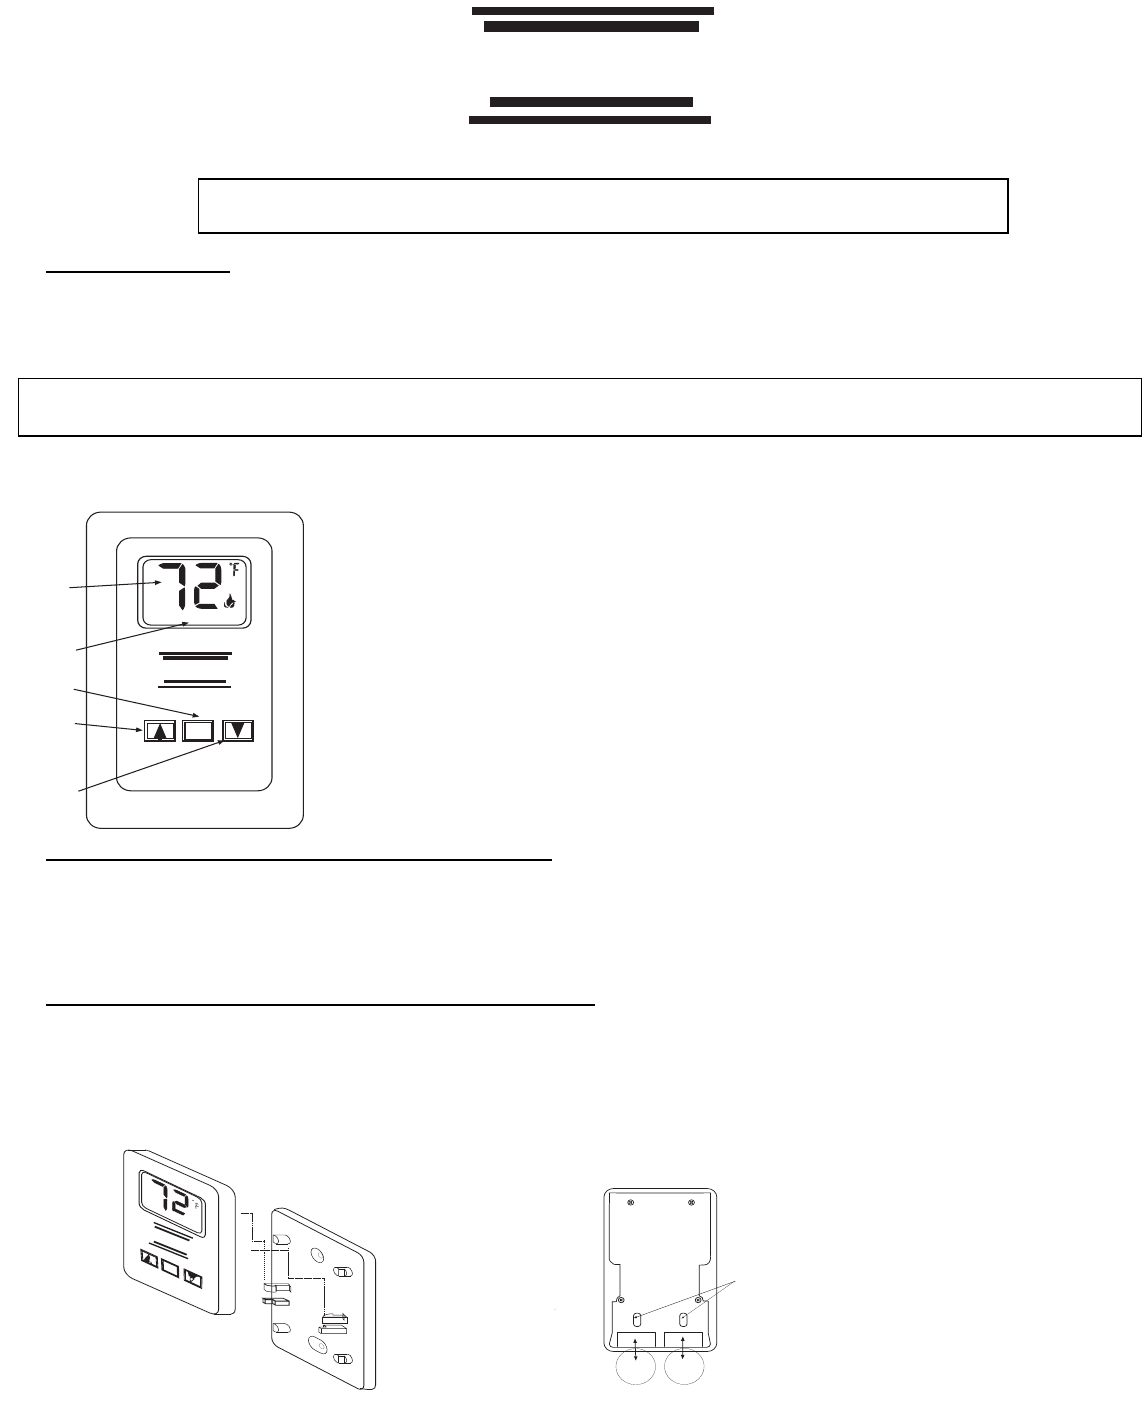 Trw 1 A Instructions New Empire Installation And Operating Wall Furnace Wiring Diagram